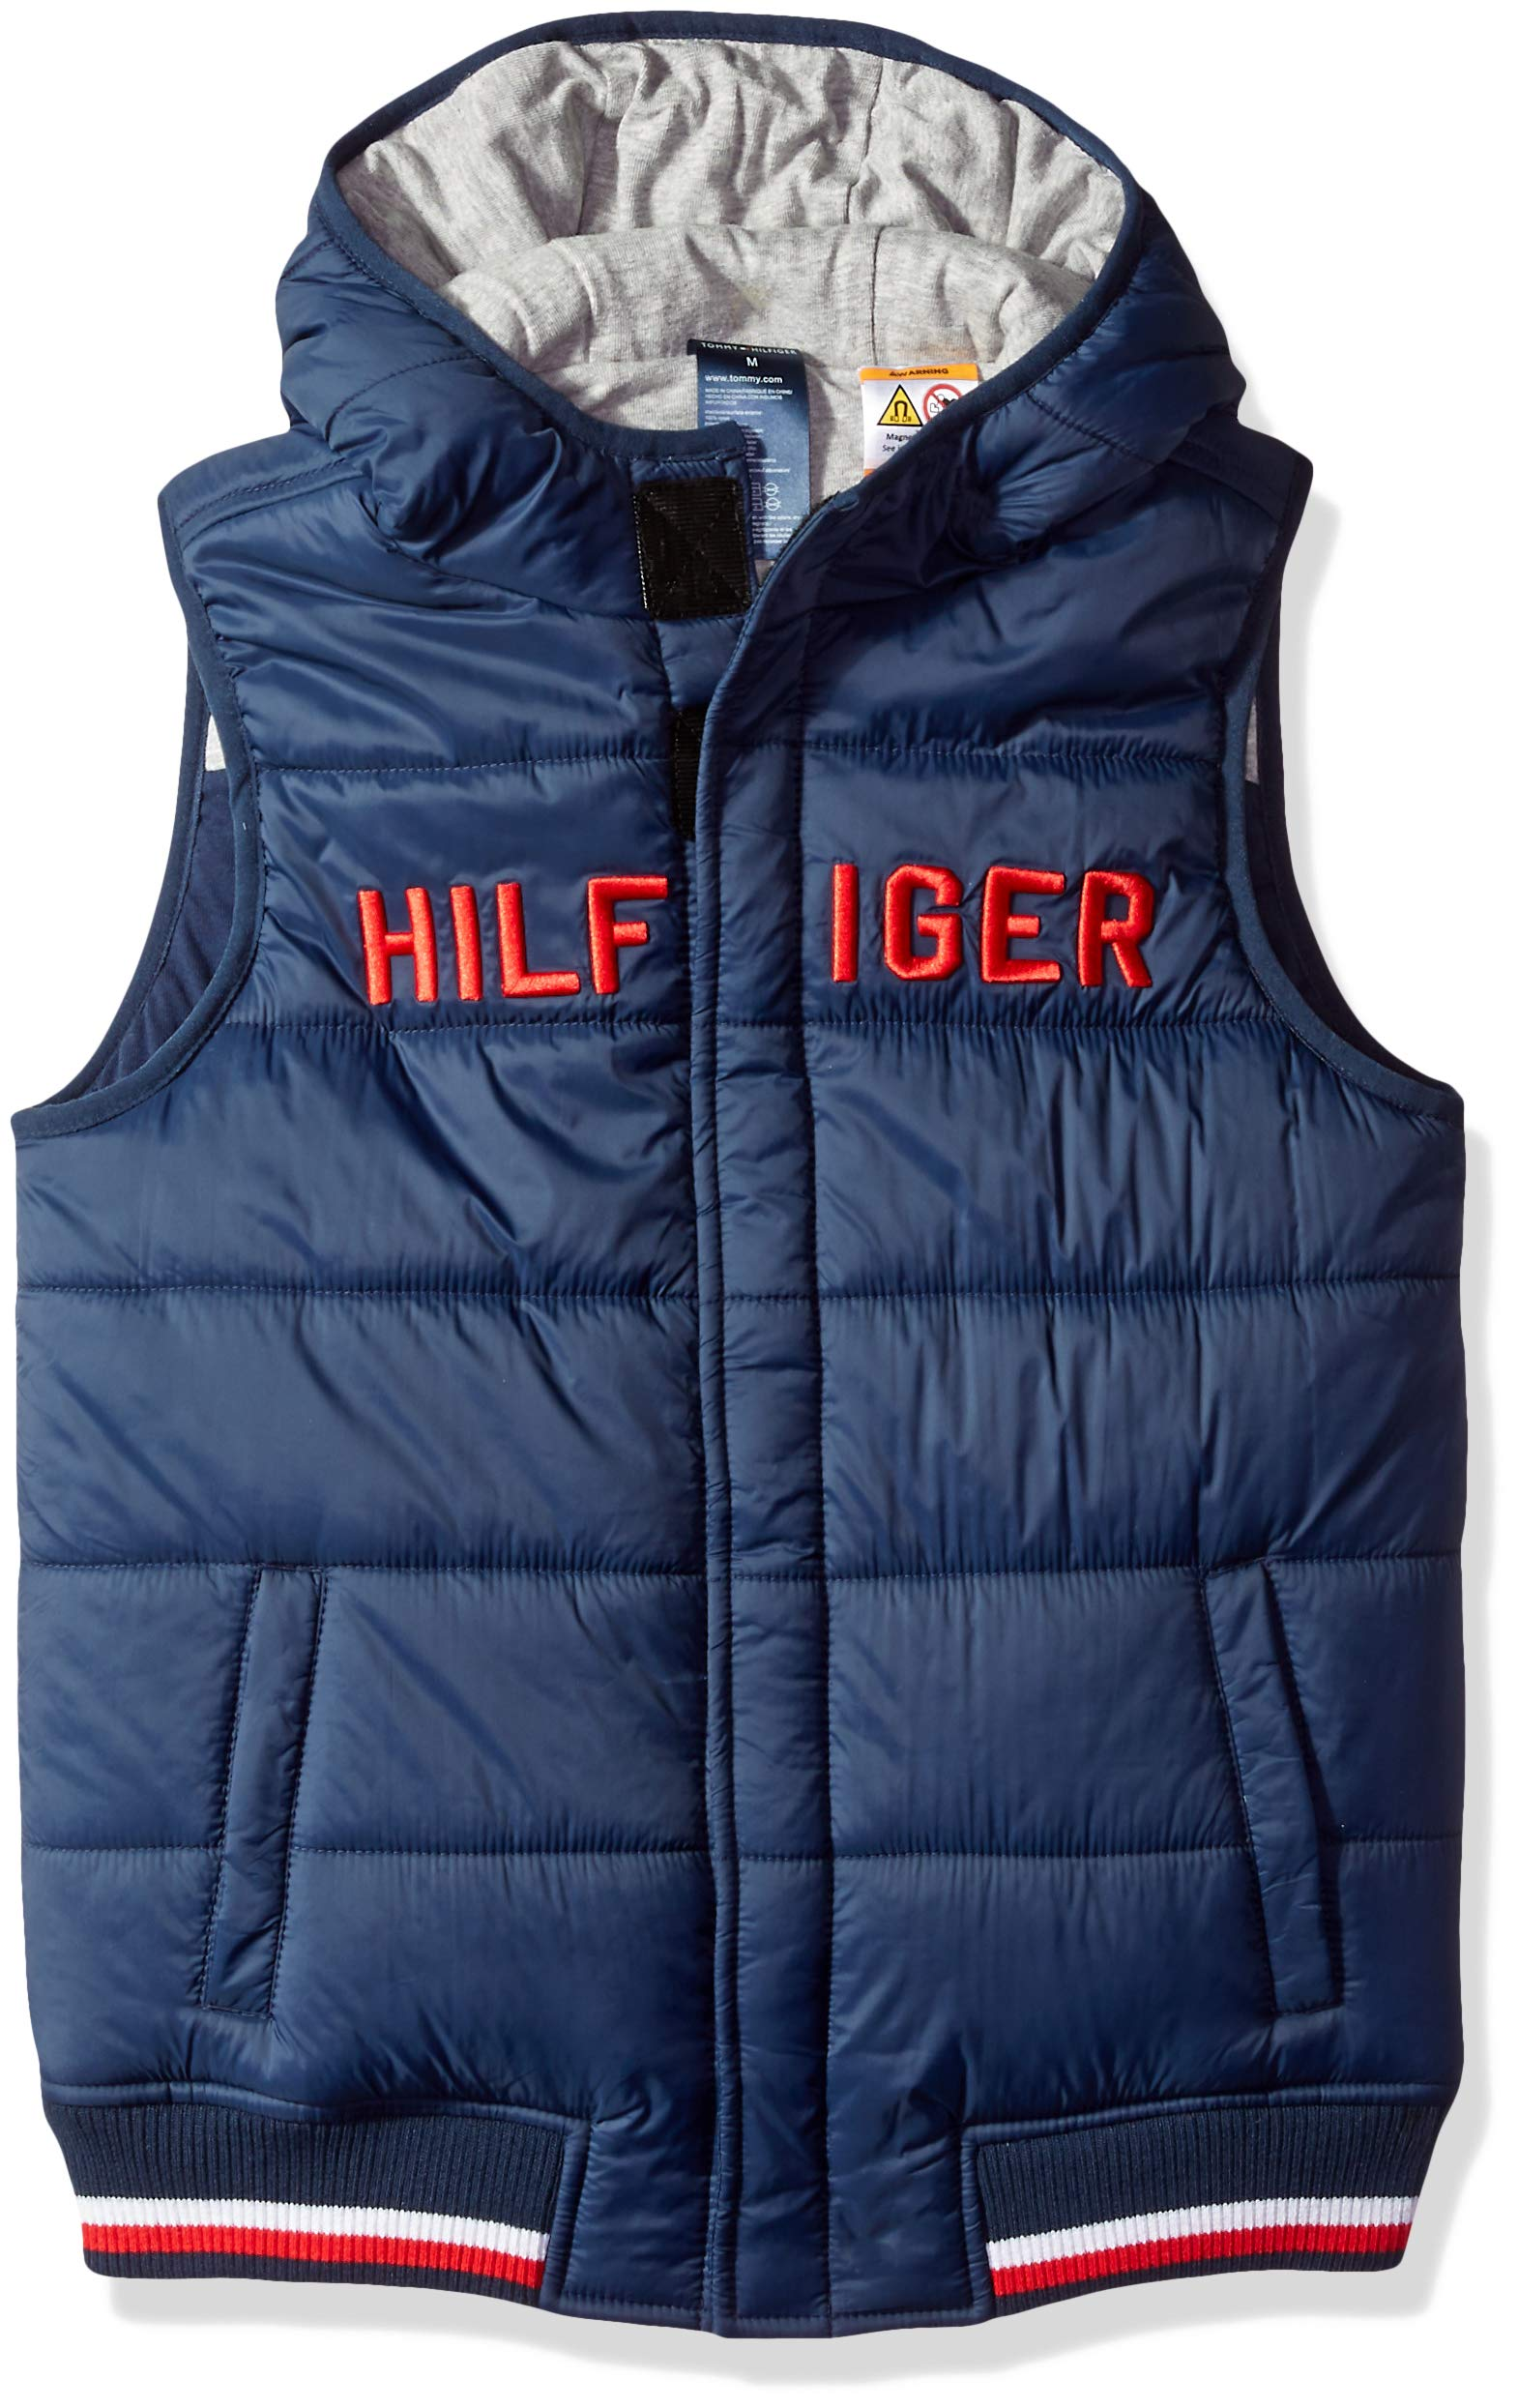 Tommy Hilfiger Boys' Adaptive Vest with Hood and Magnetic Buttons, core navy/grey Medium by Tommy Hilfiger